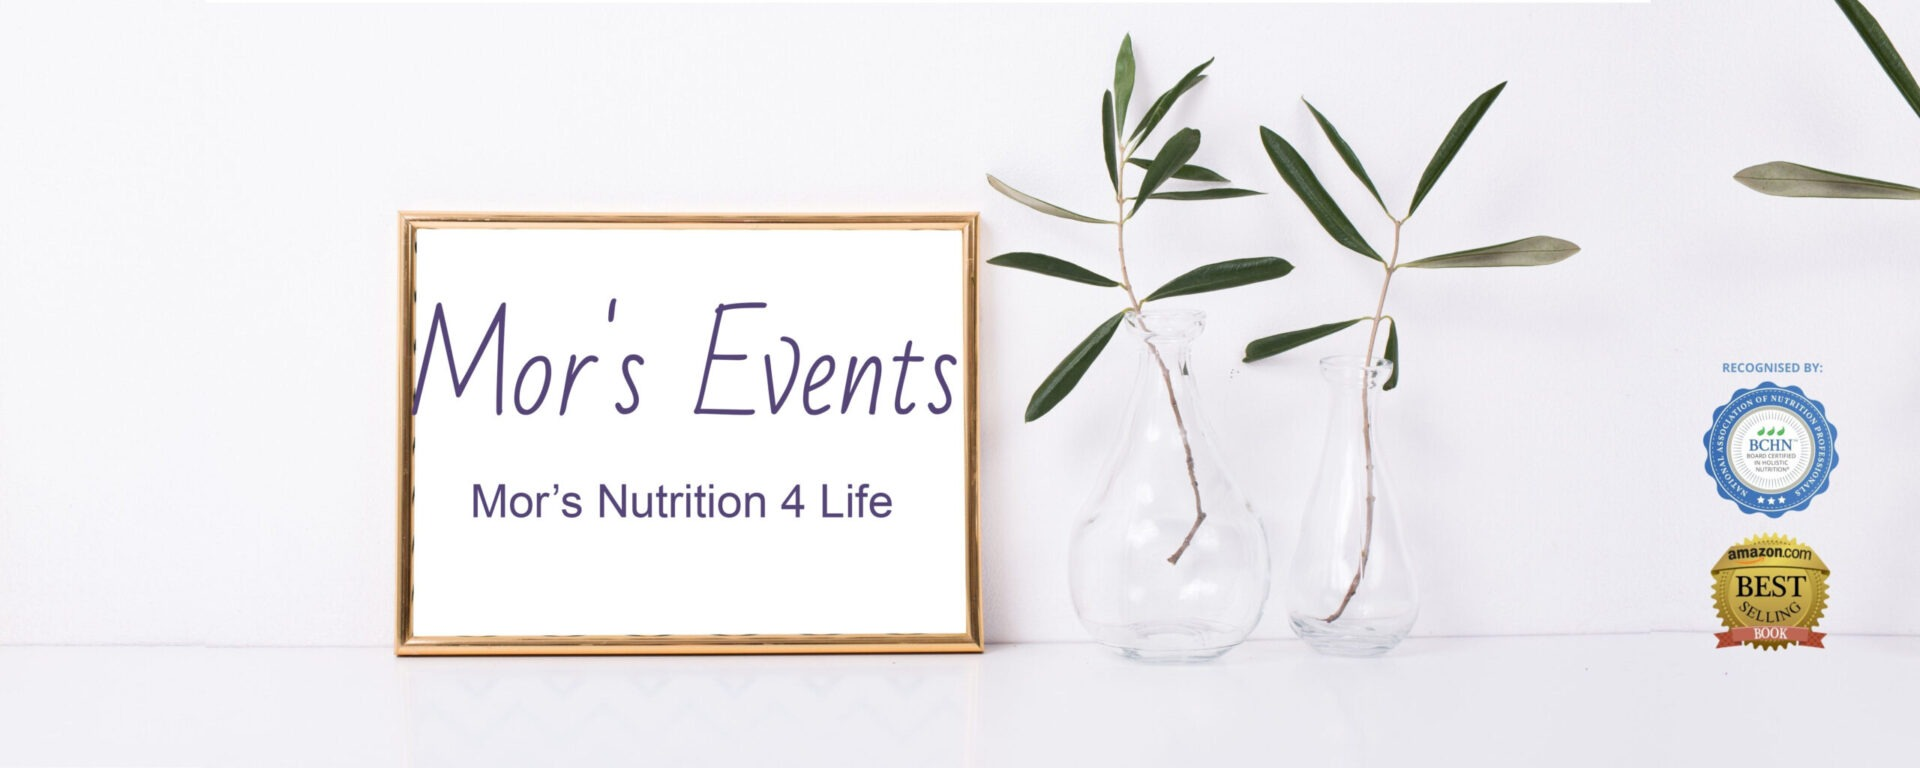 Mor's Events